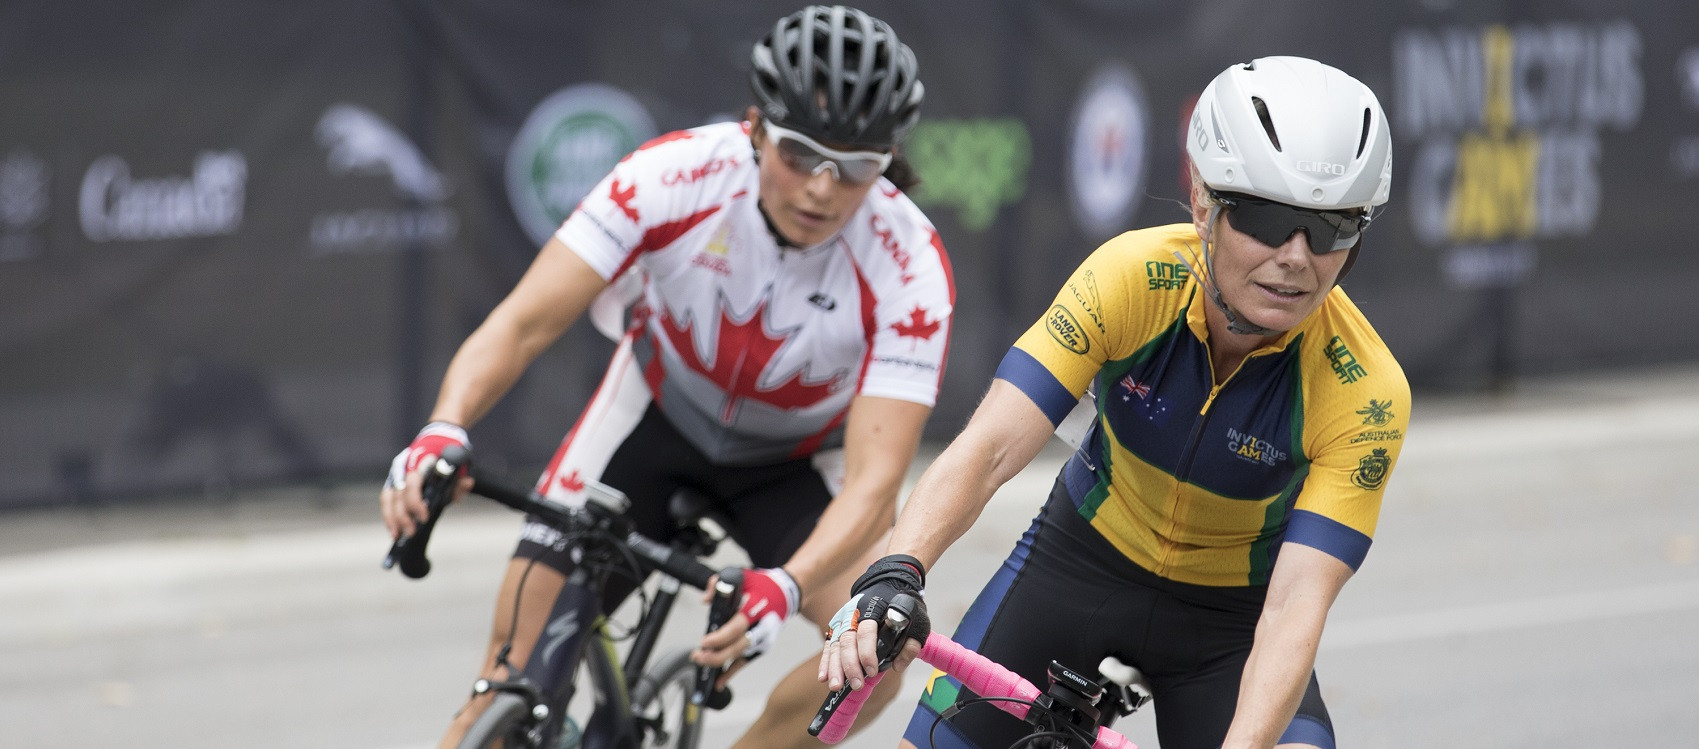 Invictus Games Foundation and USMES cyclists will participate together in events on Zwift ©Getty Images